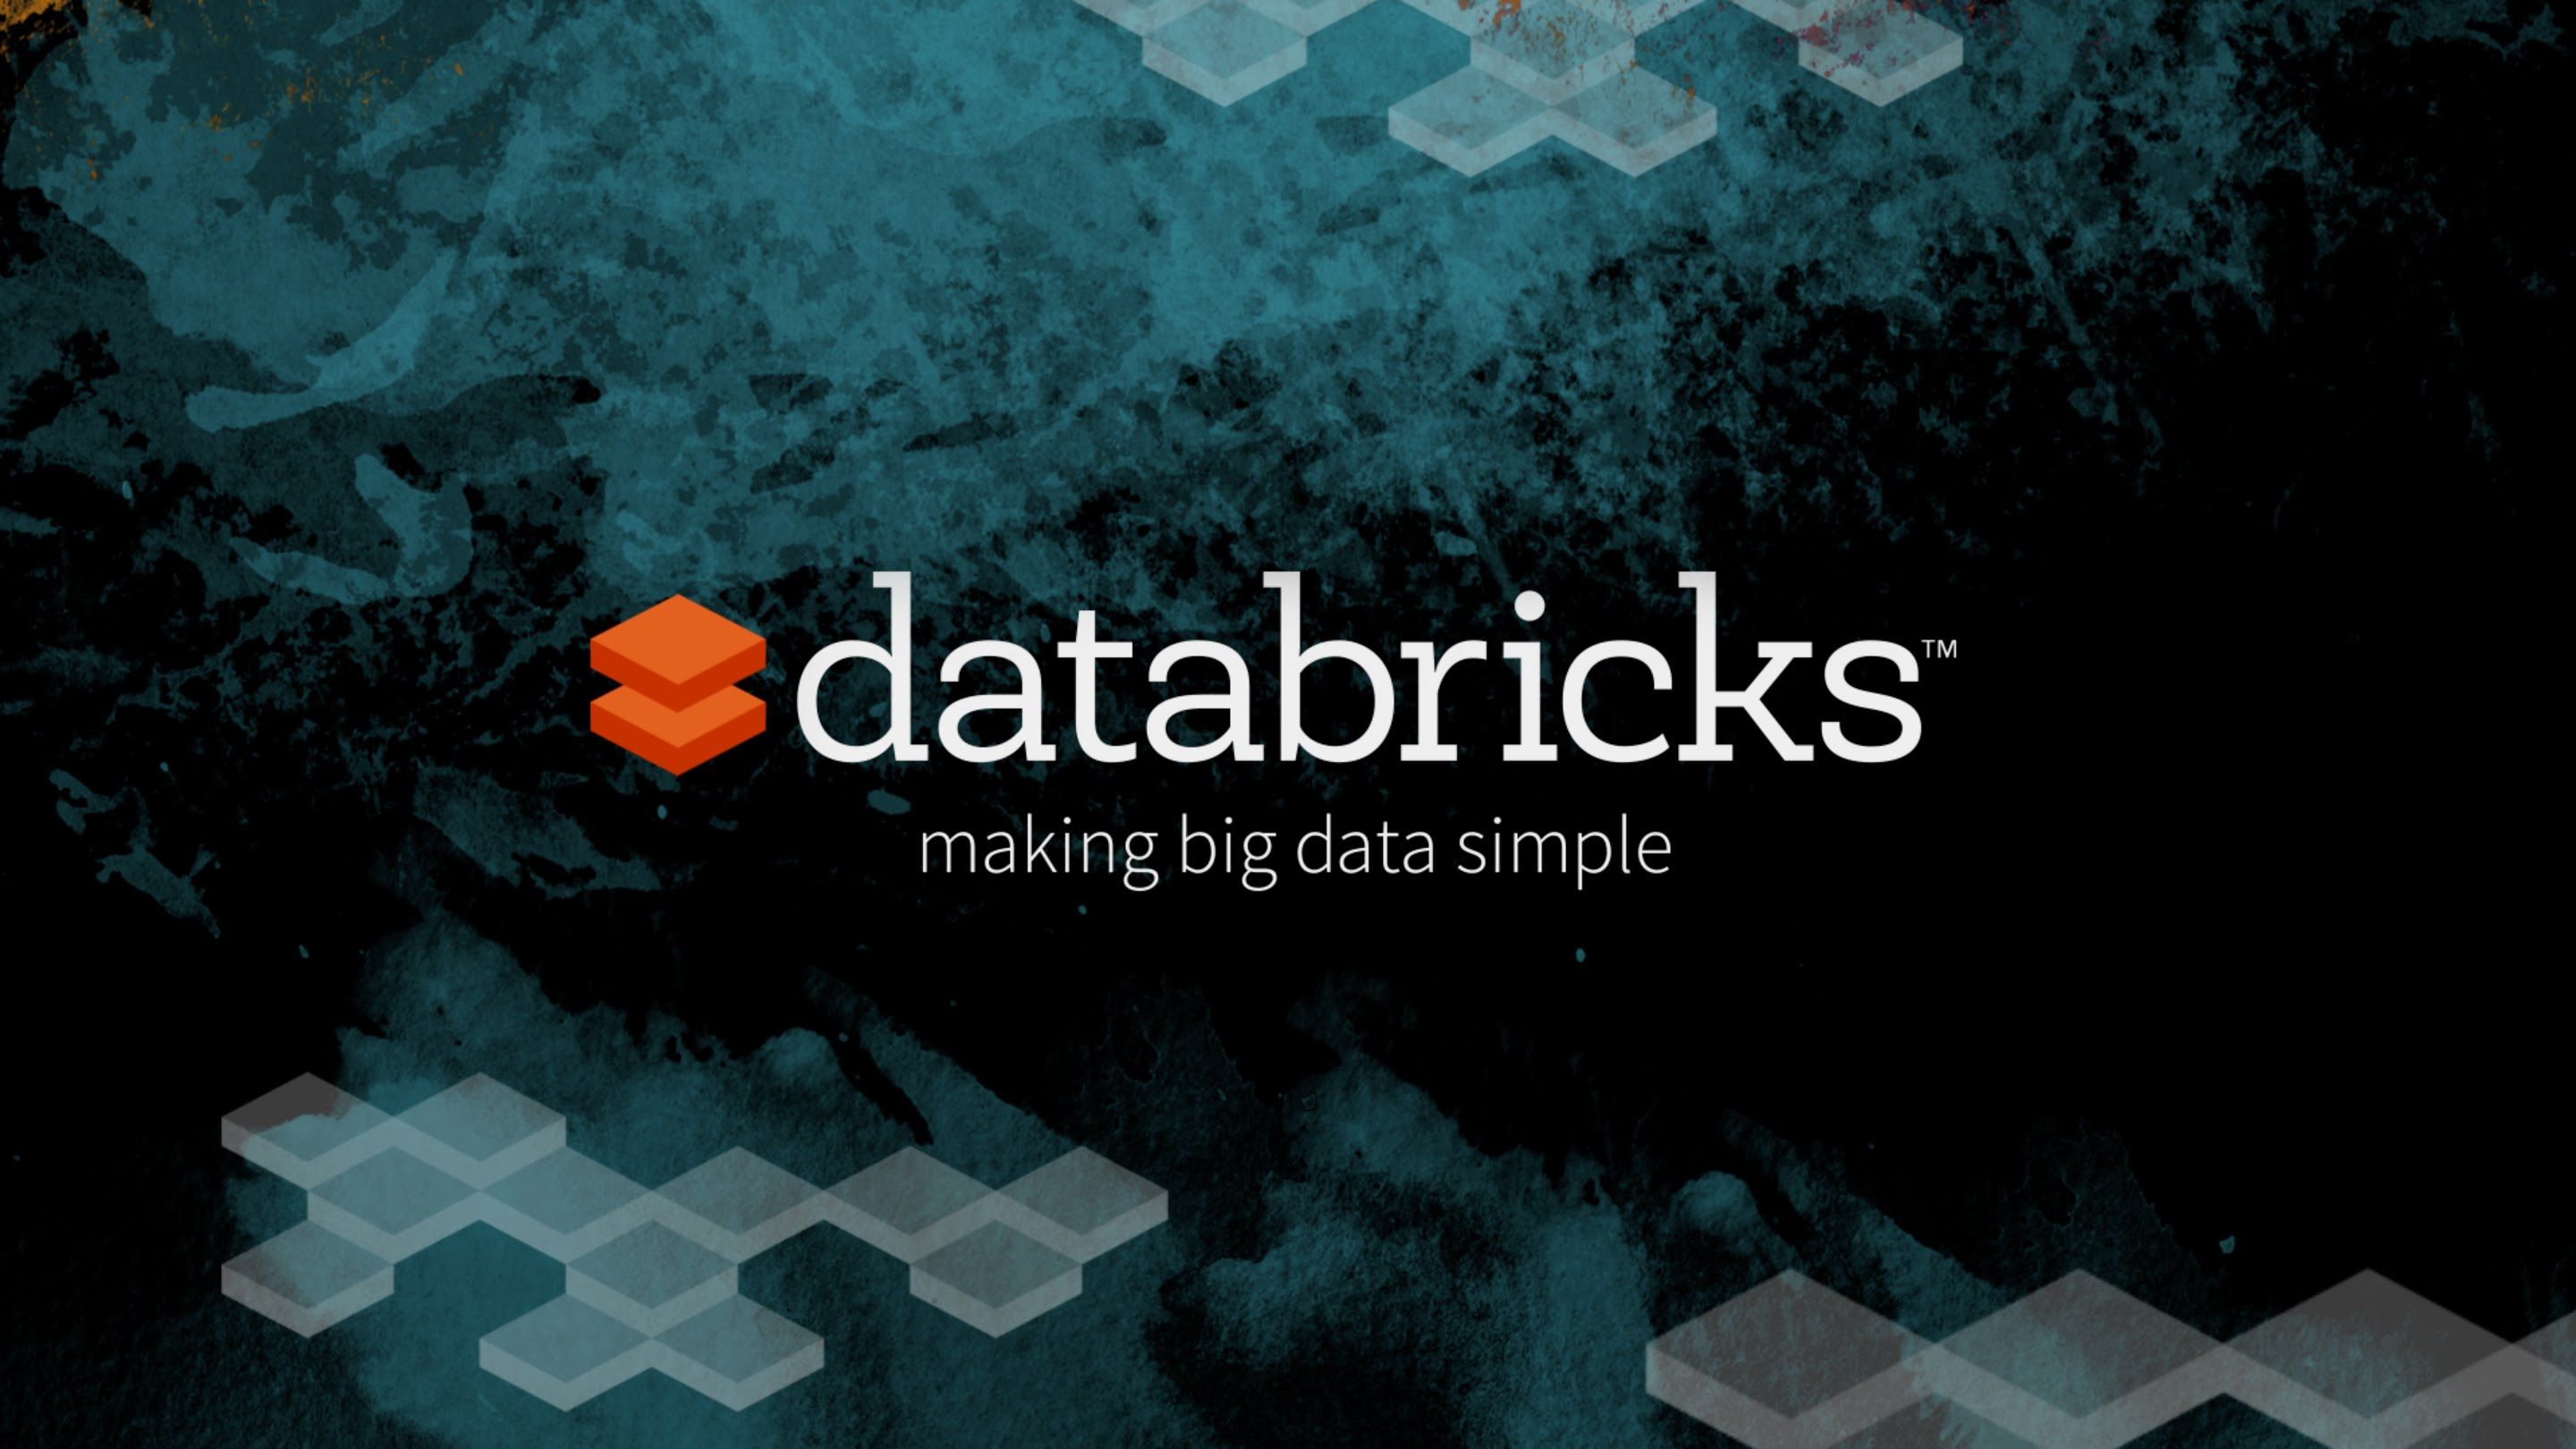 Databricks Raises $140 Million for AI Enterprise - Newslibre